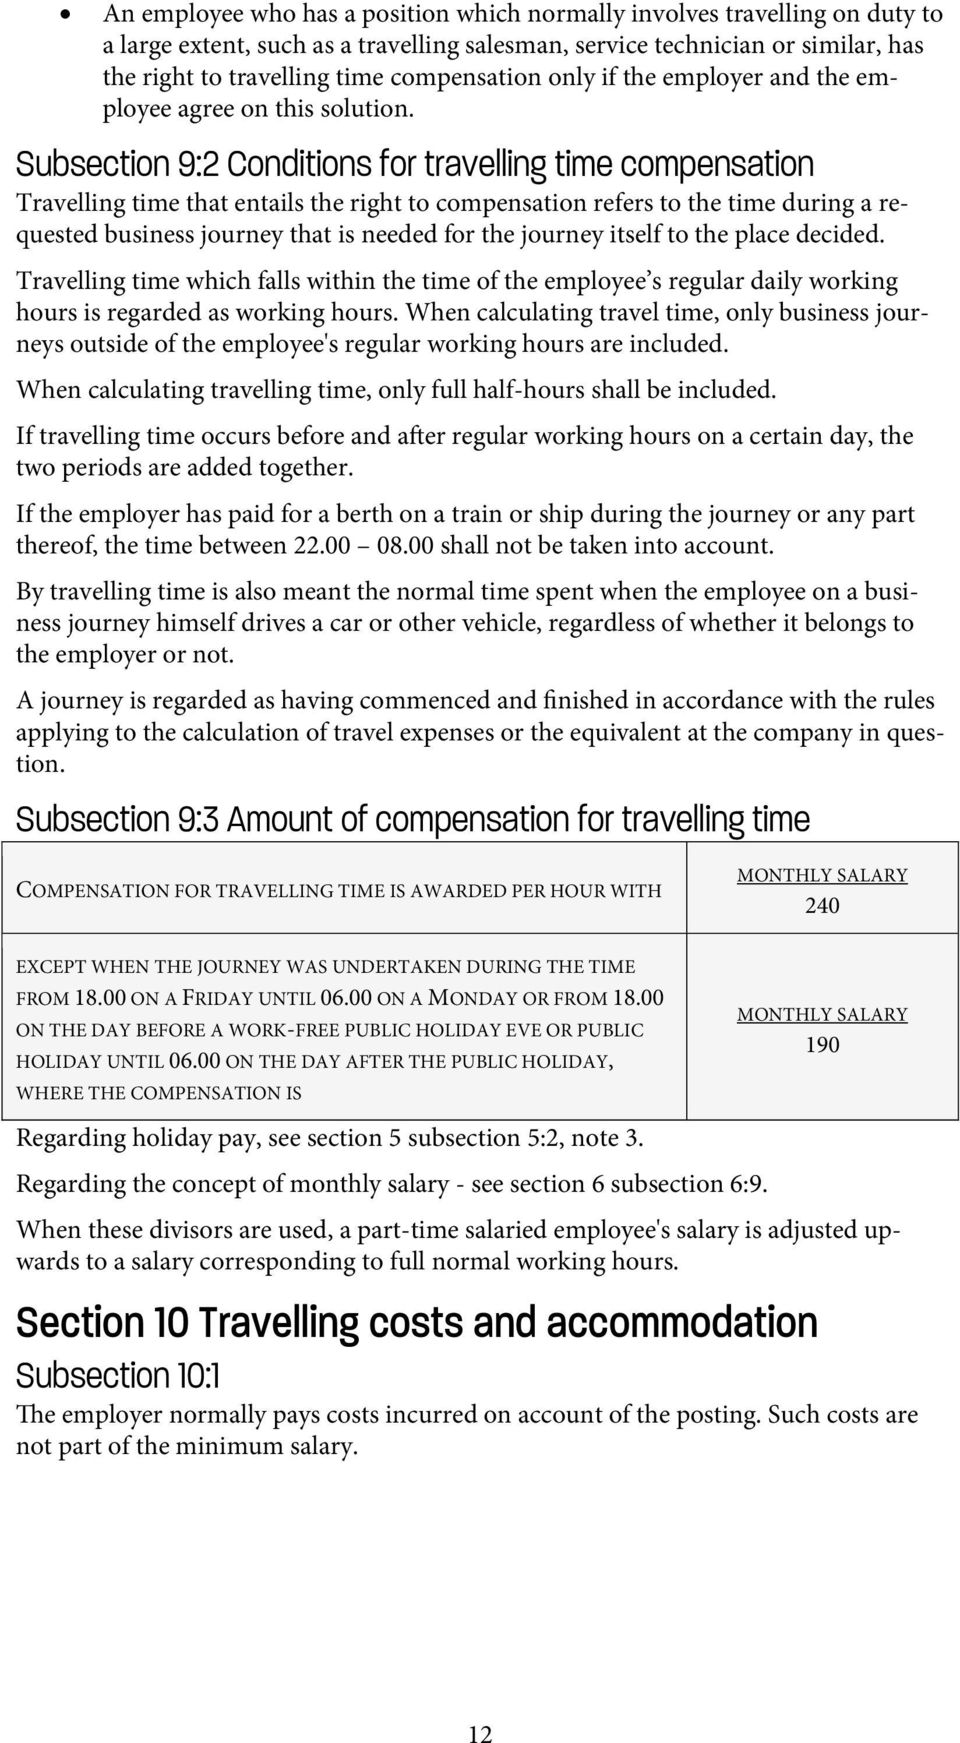 Subsection 9:2 Conditions for travelling time compensation Travelling time that entails the right to compensation refers to the time during a requested business journey that is needed for the journey